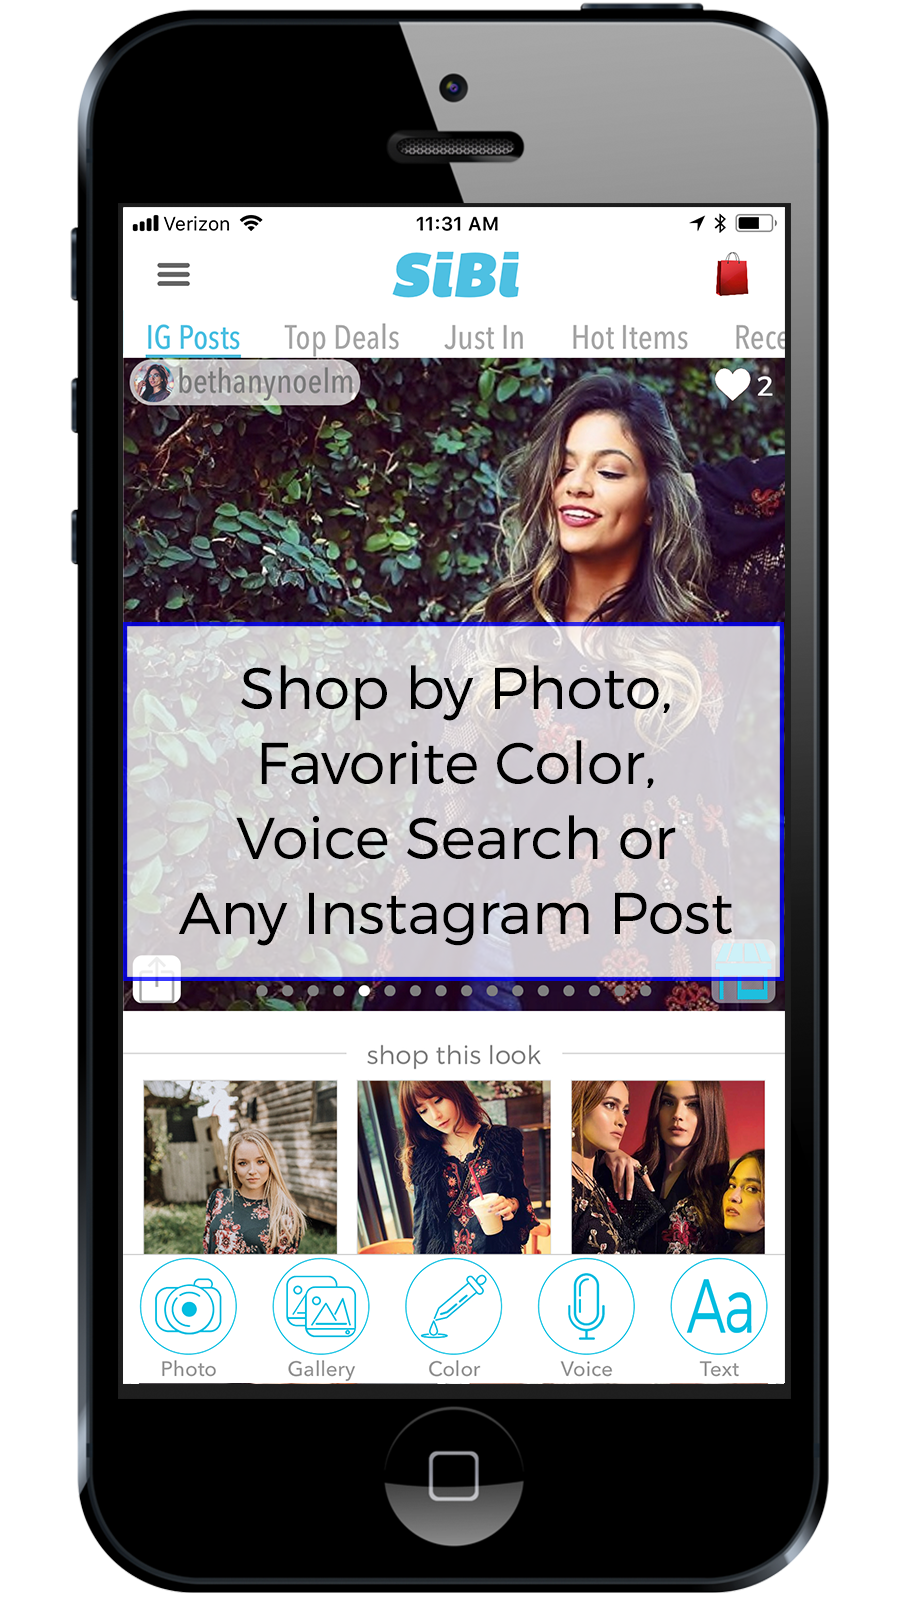 Shop by Photo, Color, Voice or IG Post